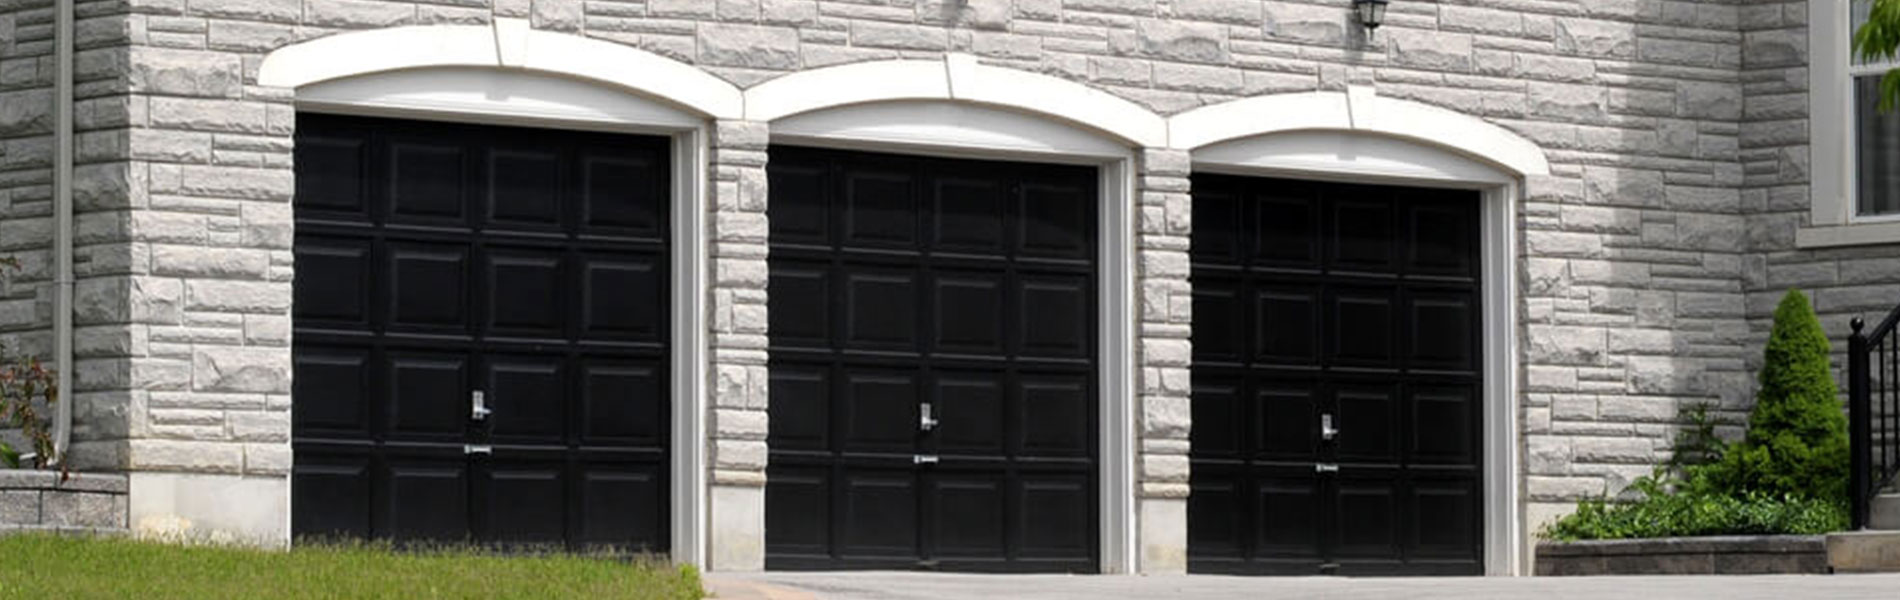 Neighborhood Garage Door Service, Salt Lake City, UT 801-899-7292